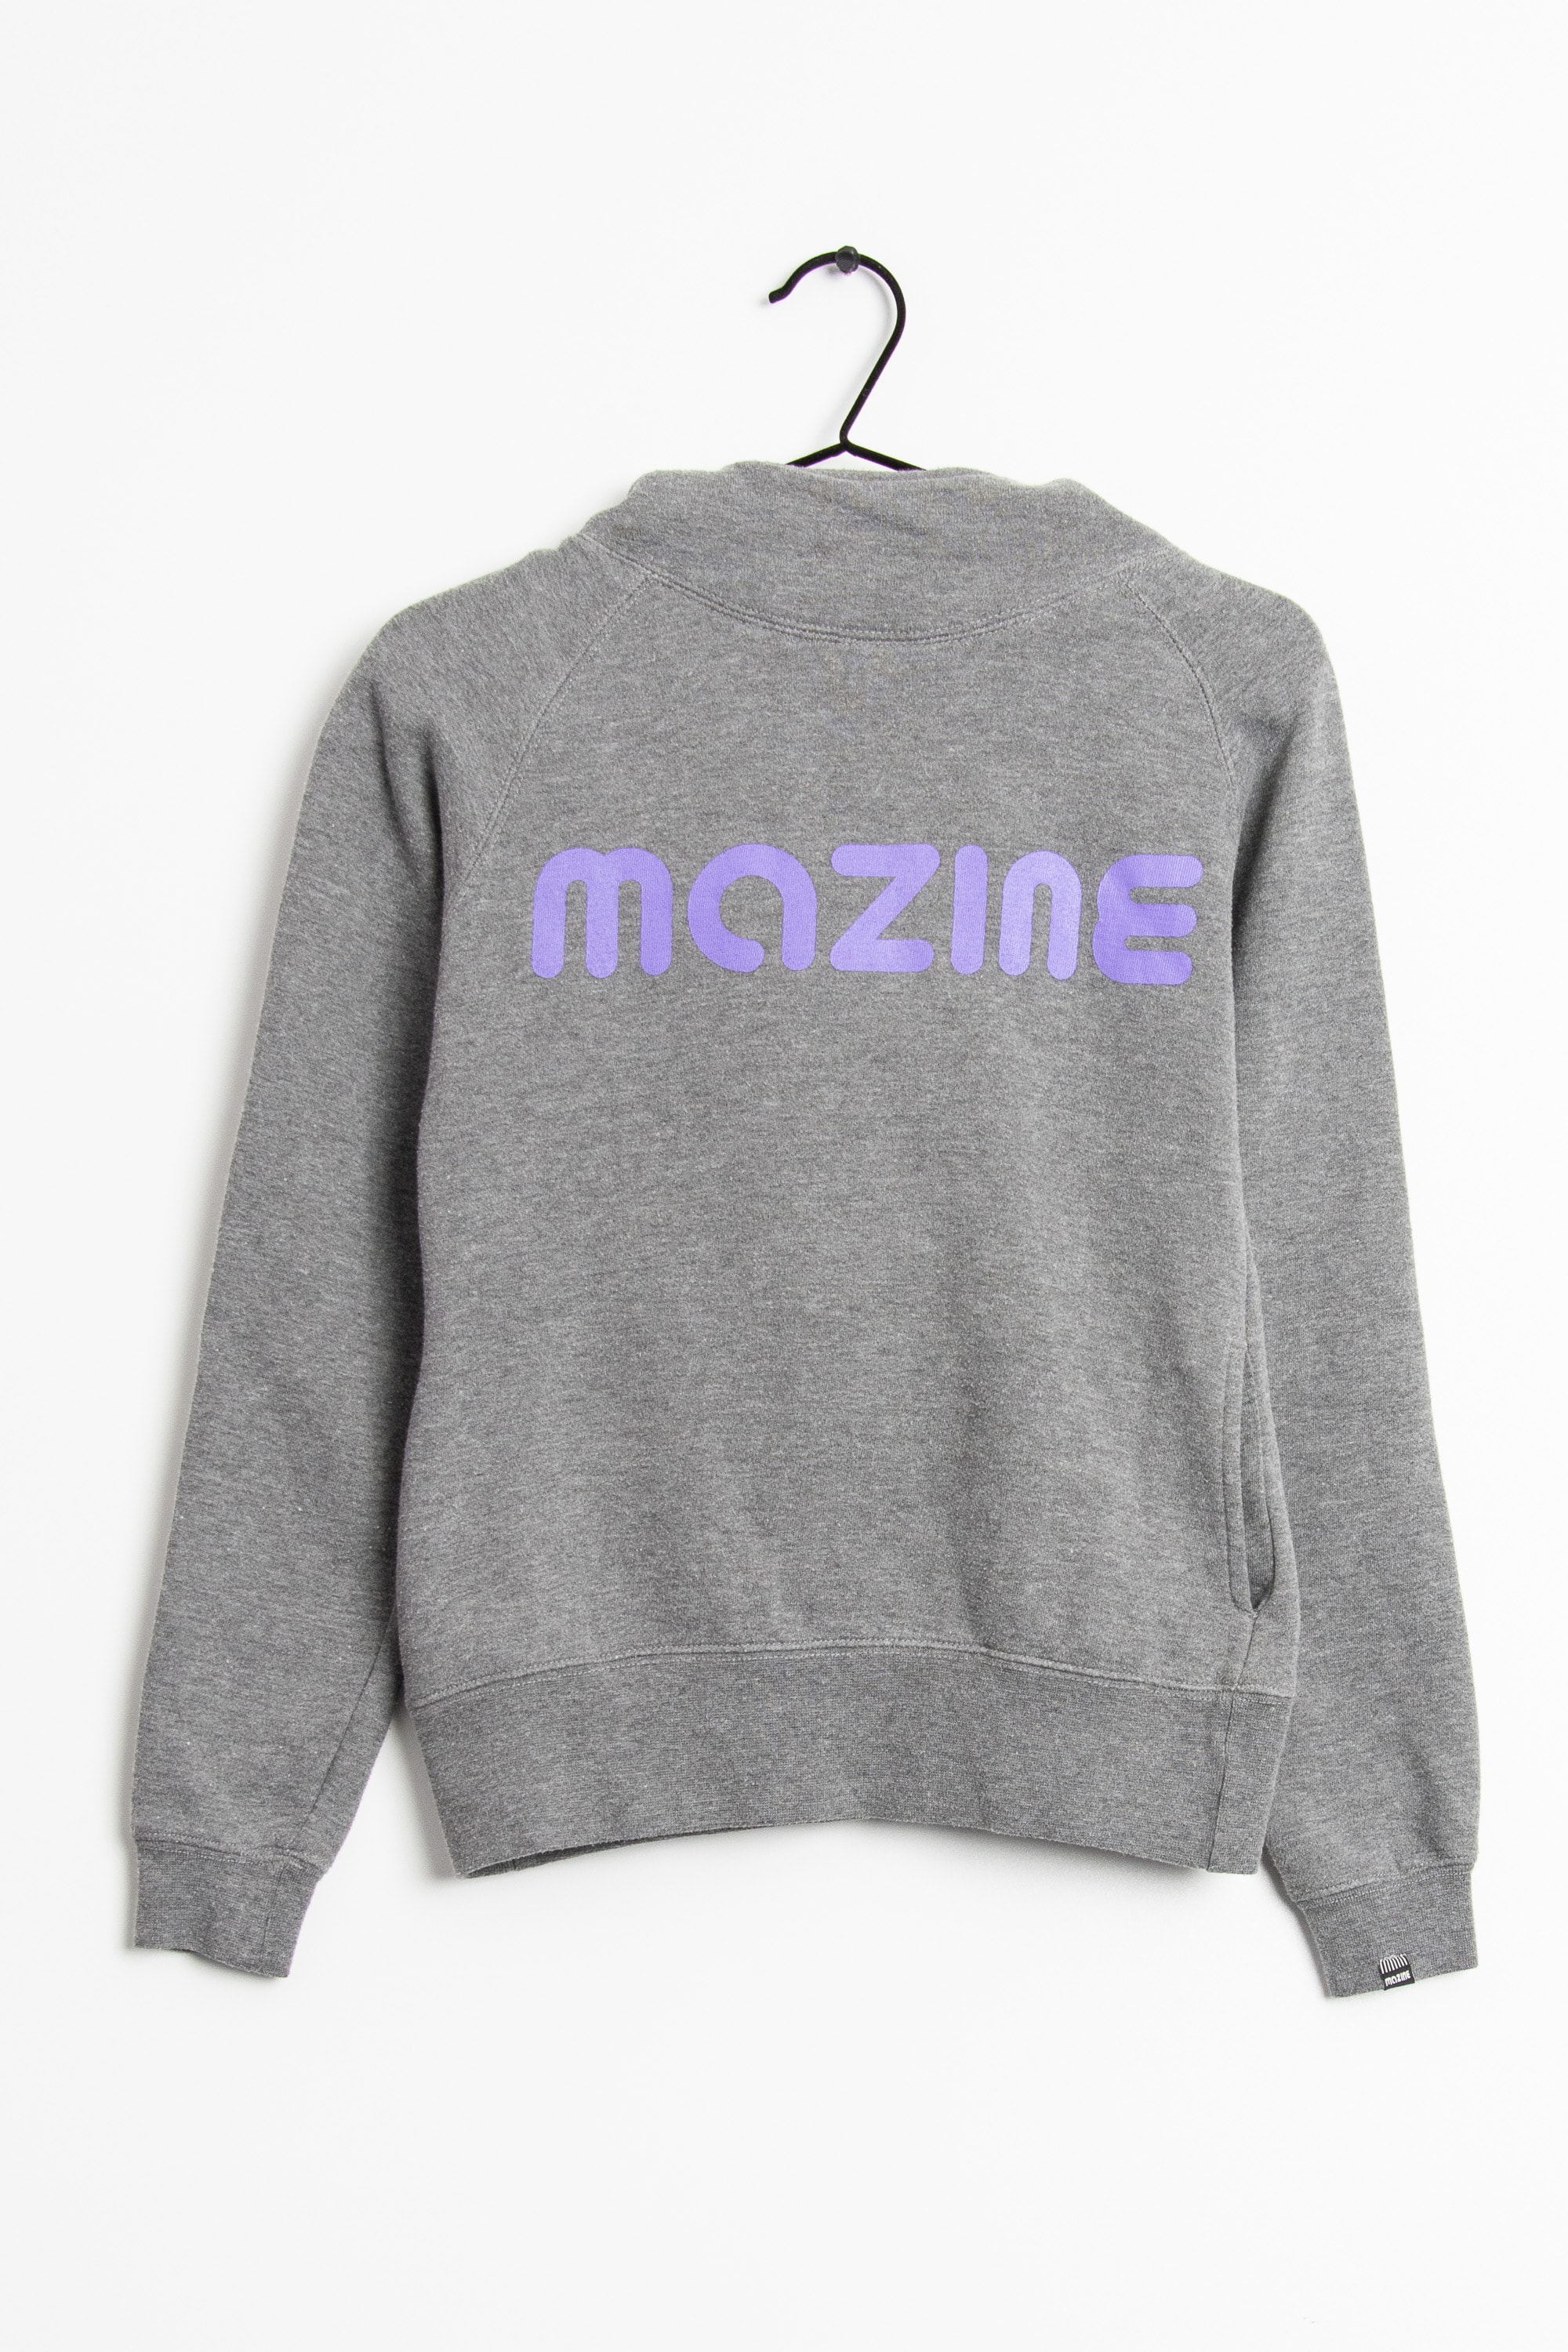 Mazine Sweat / Fleece Grau Gr.XS